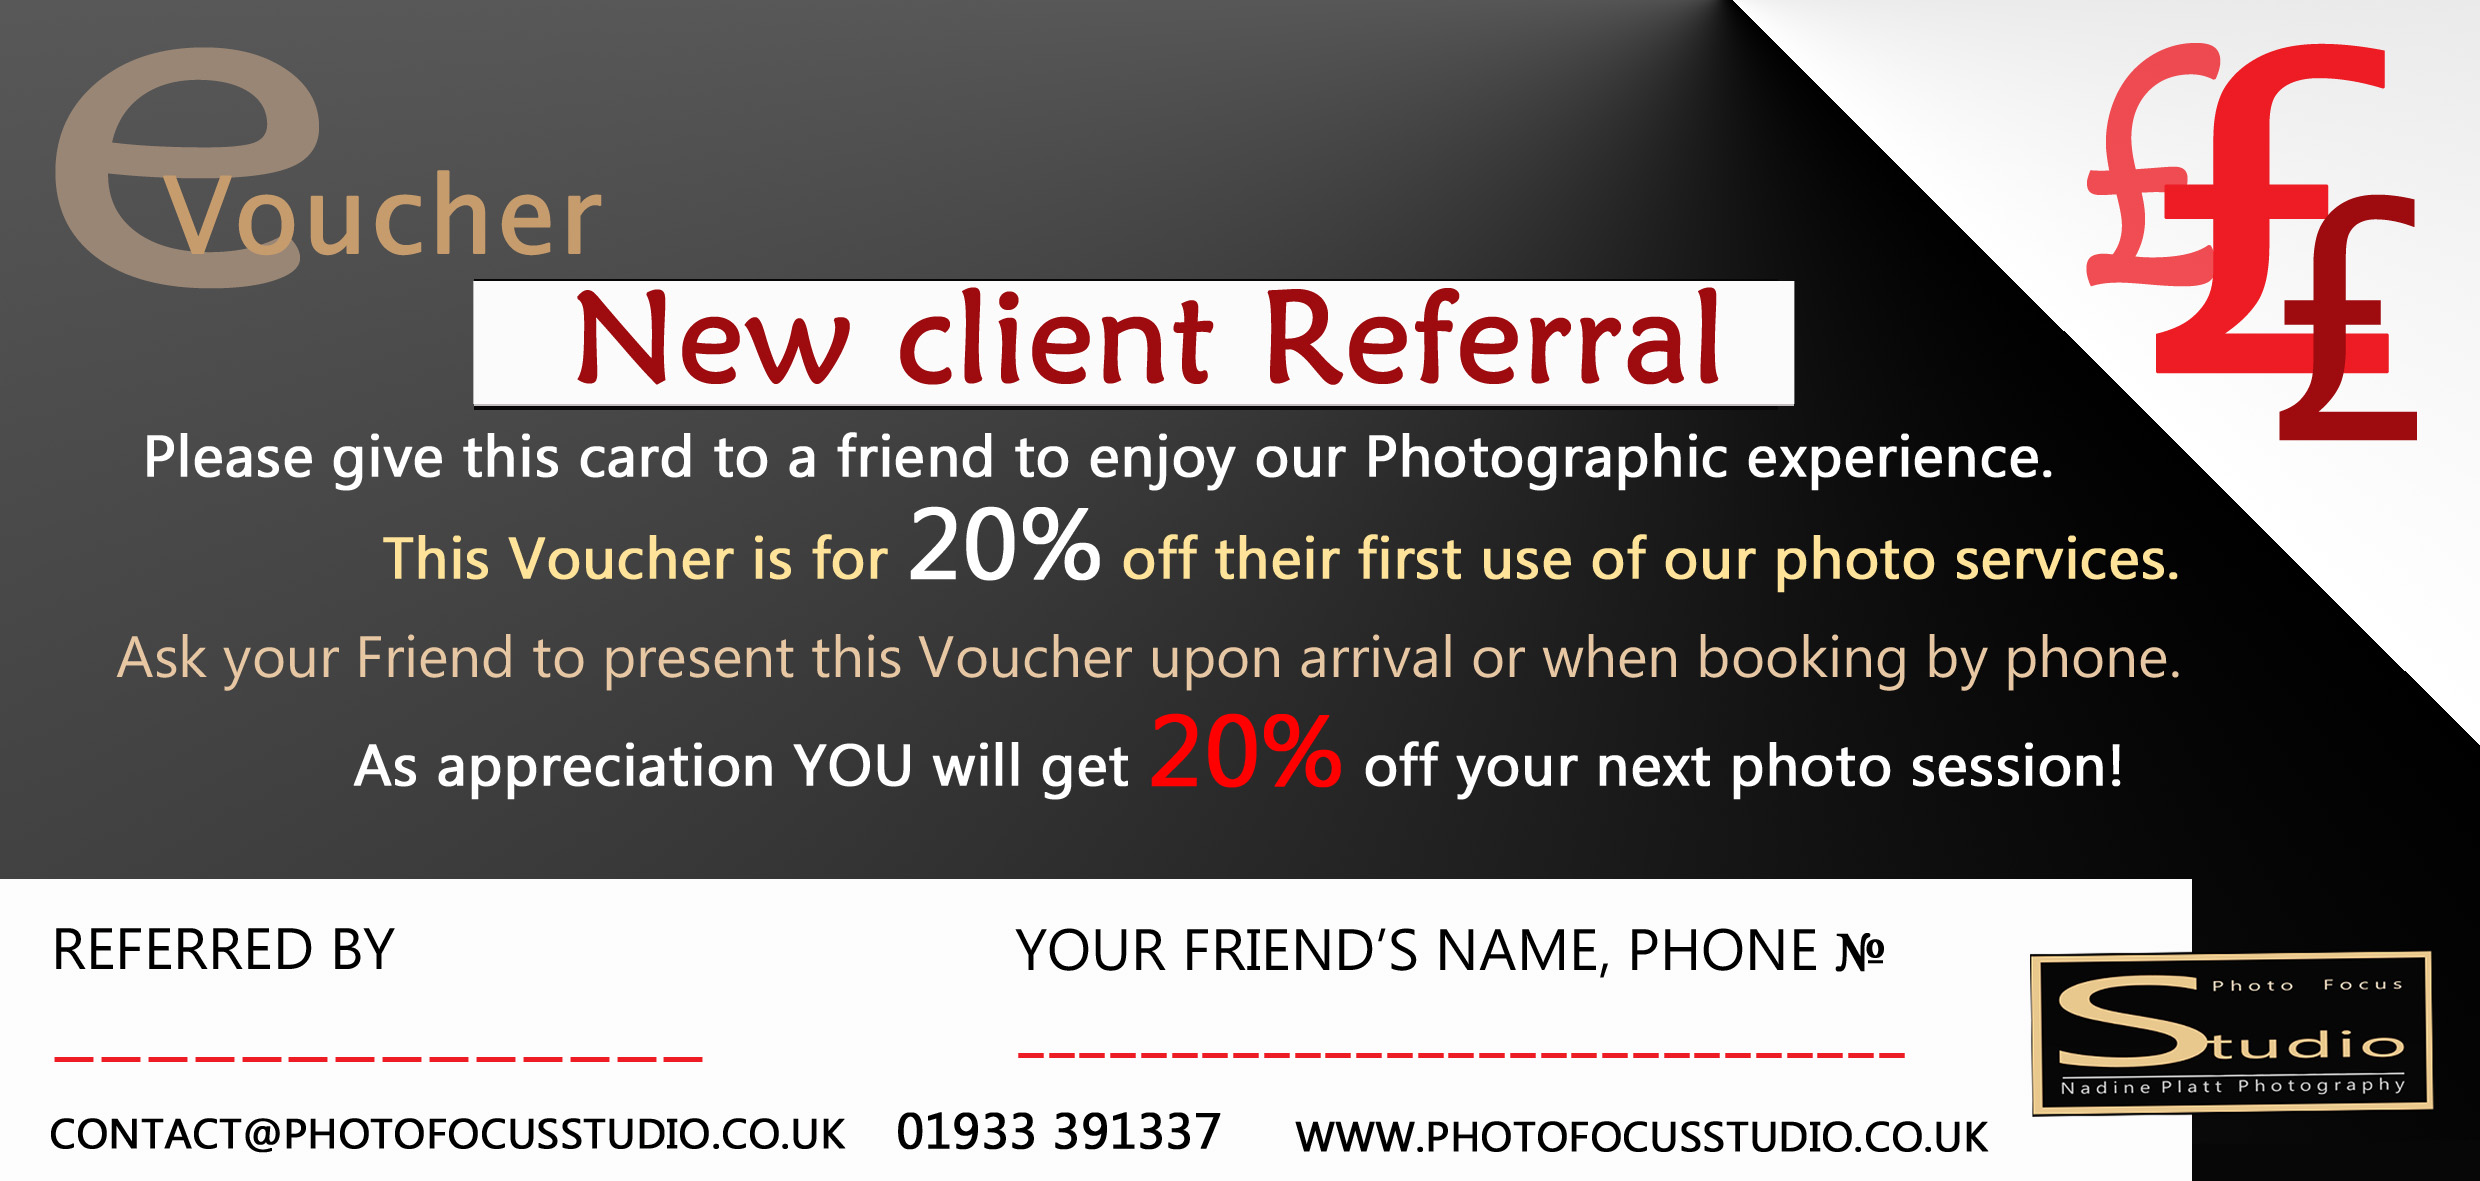 photo focus studio referral vouchere